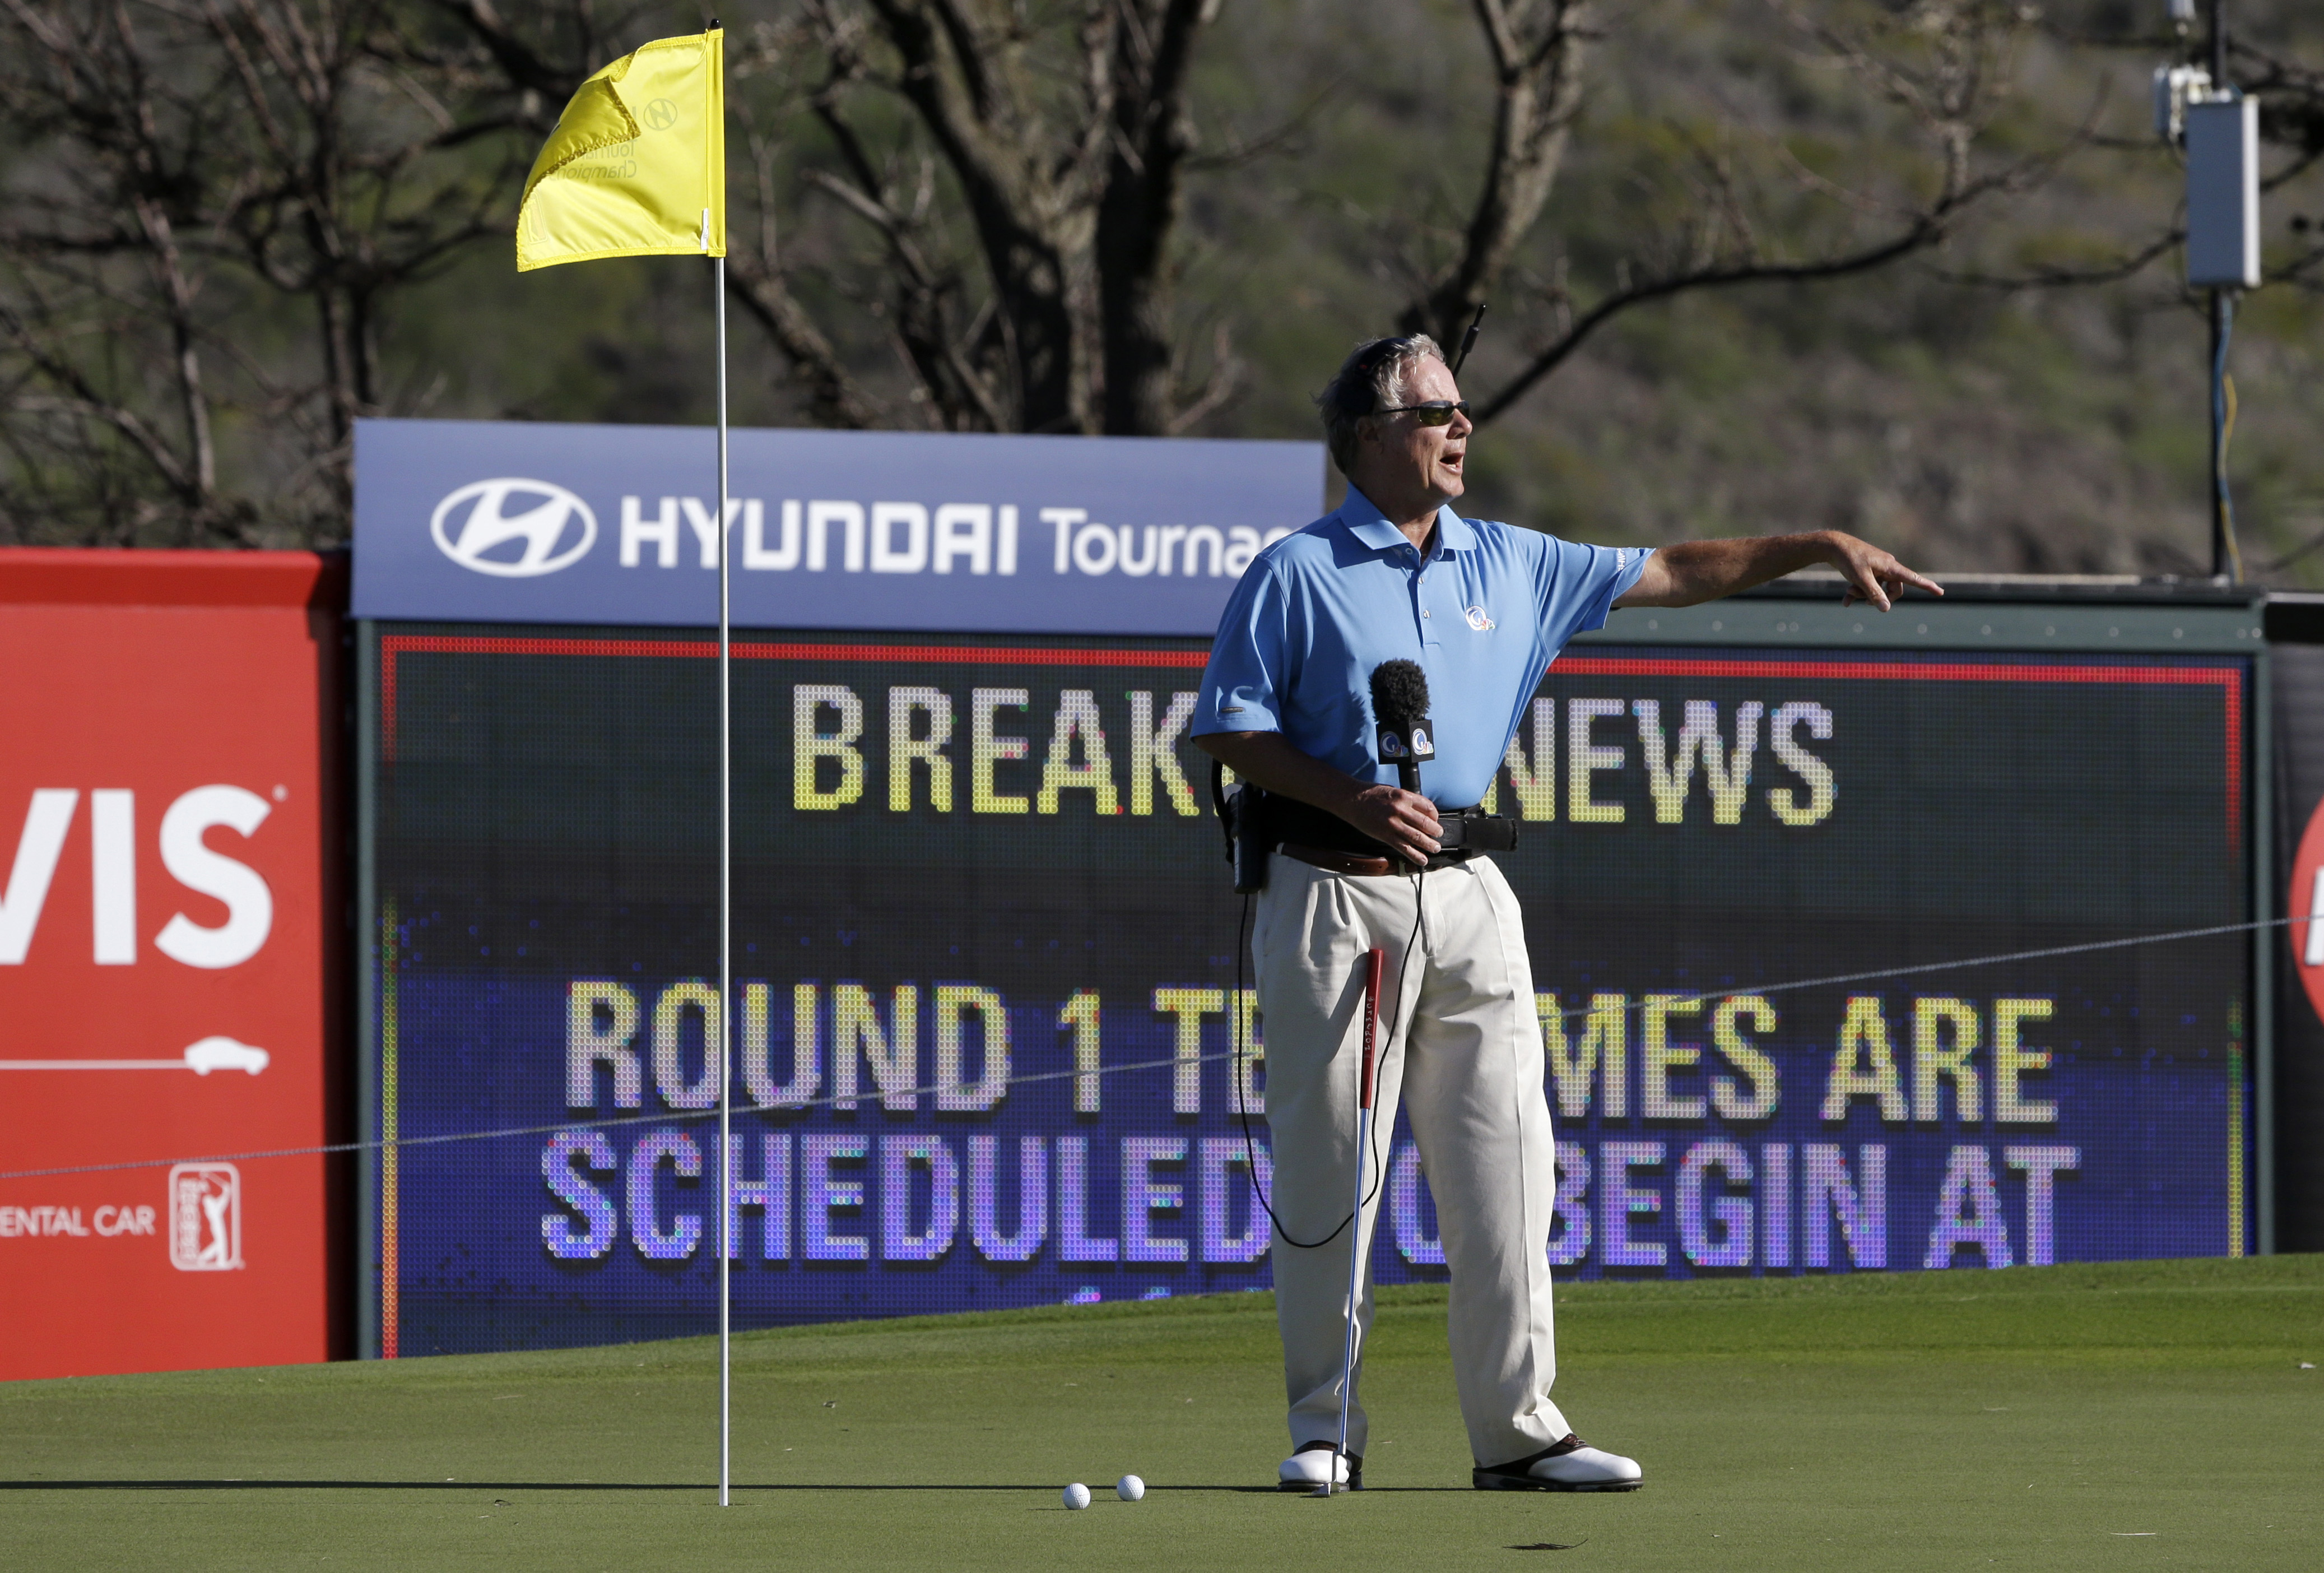 FILE - This Jan. 6, 2013, file photo shows broadcast analyst Mark Rolfing talking about the wind from the 10th green before the first round at the Tournament of Champions PGA golf tournament, in Kapalua, Hawaii. Five months after he was diagnosed with a r